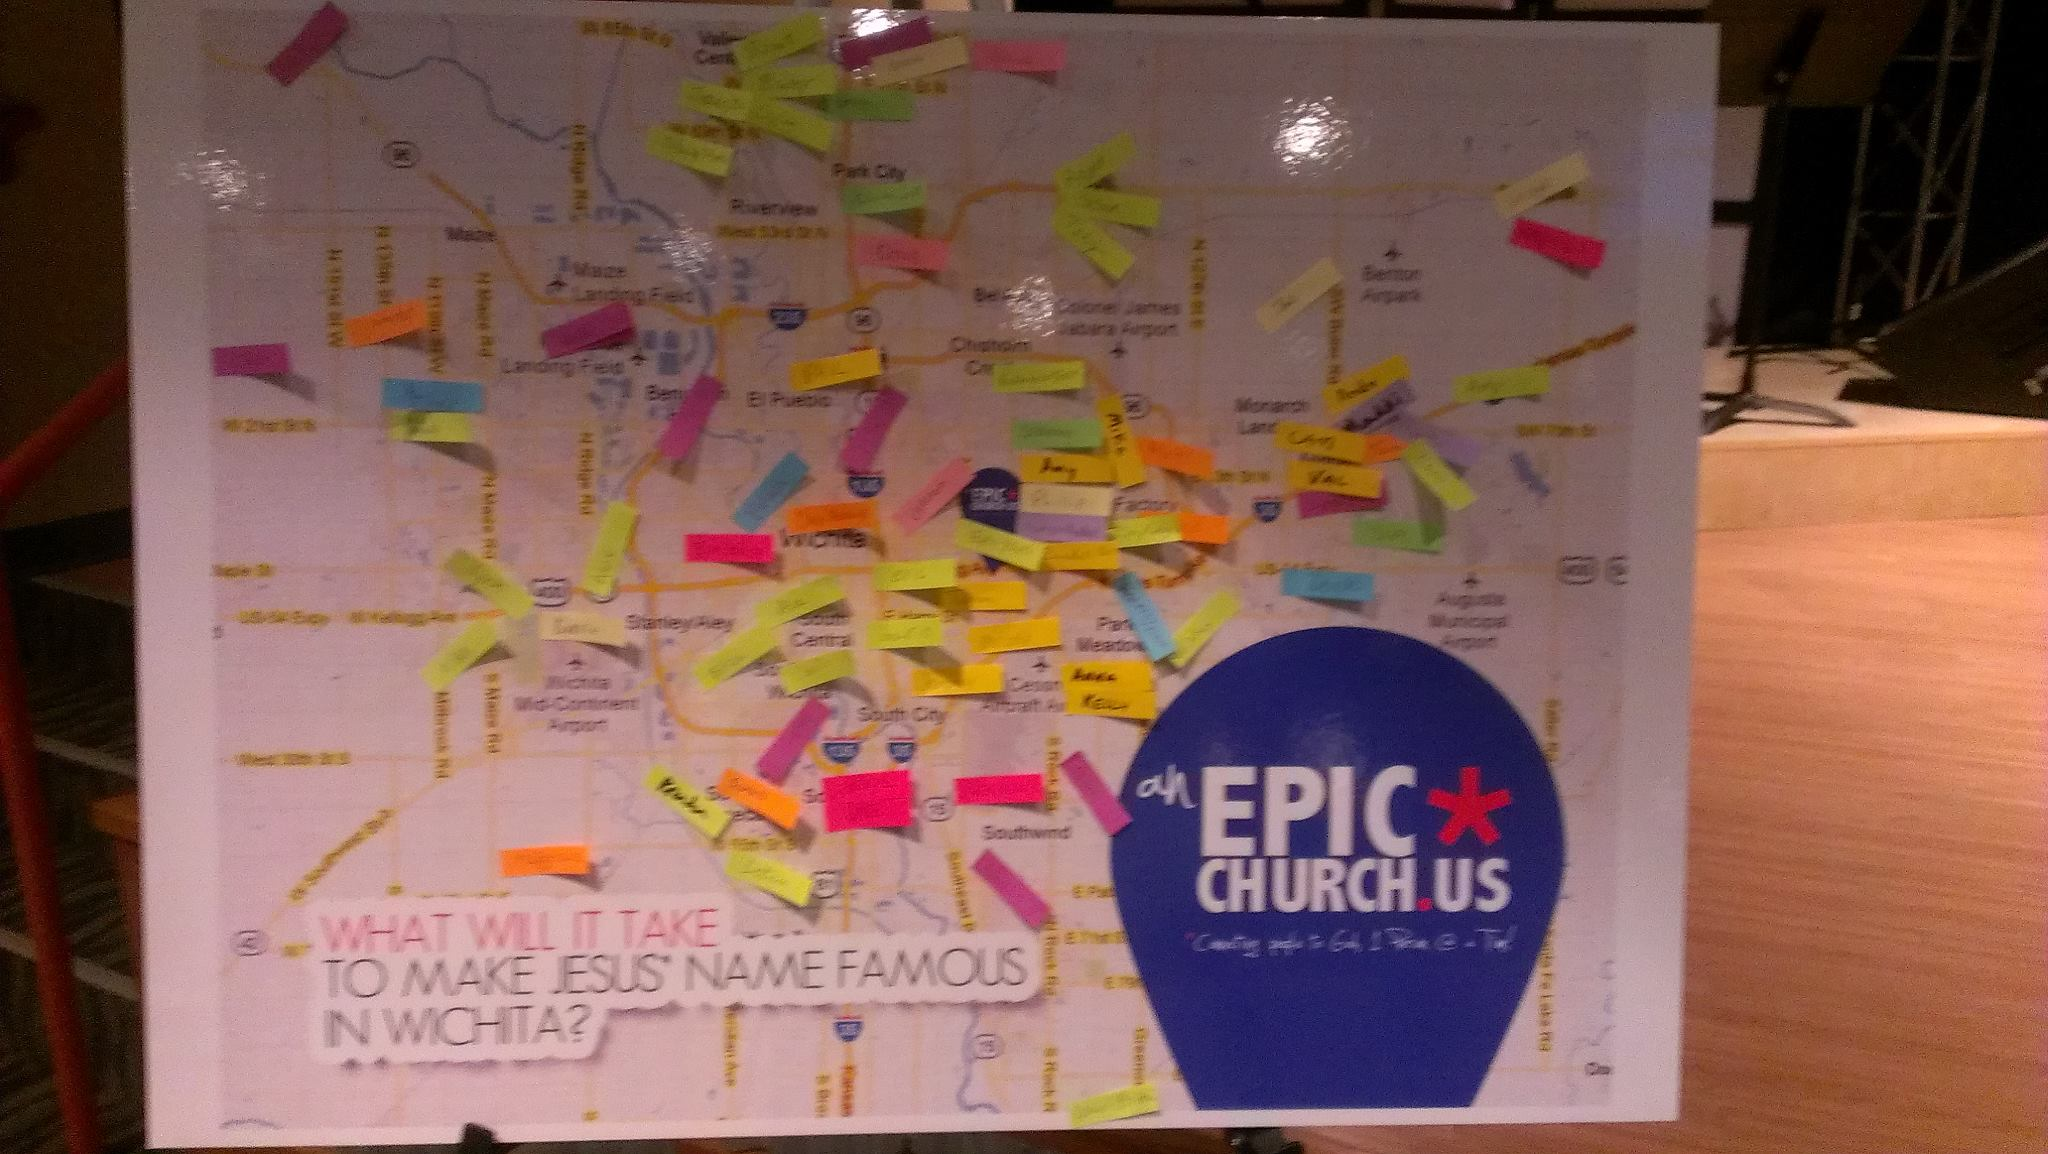 Epic Church Map of Wichita